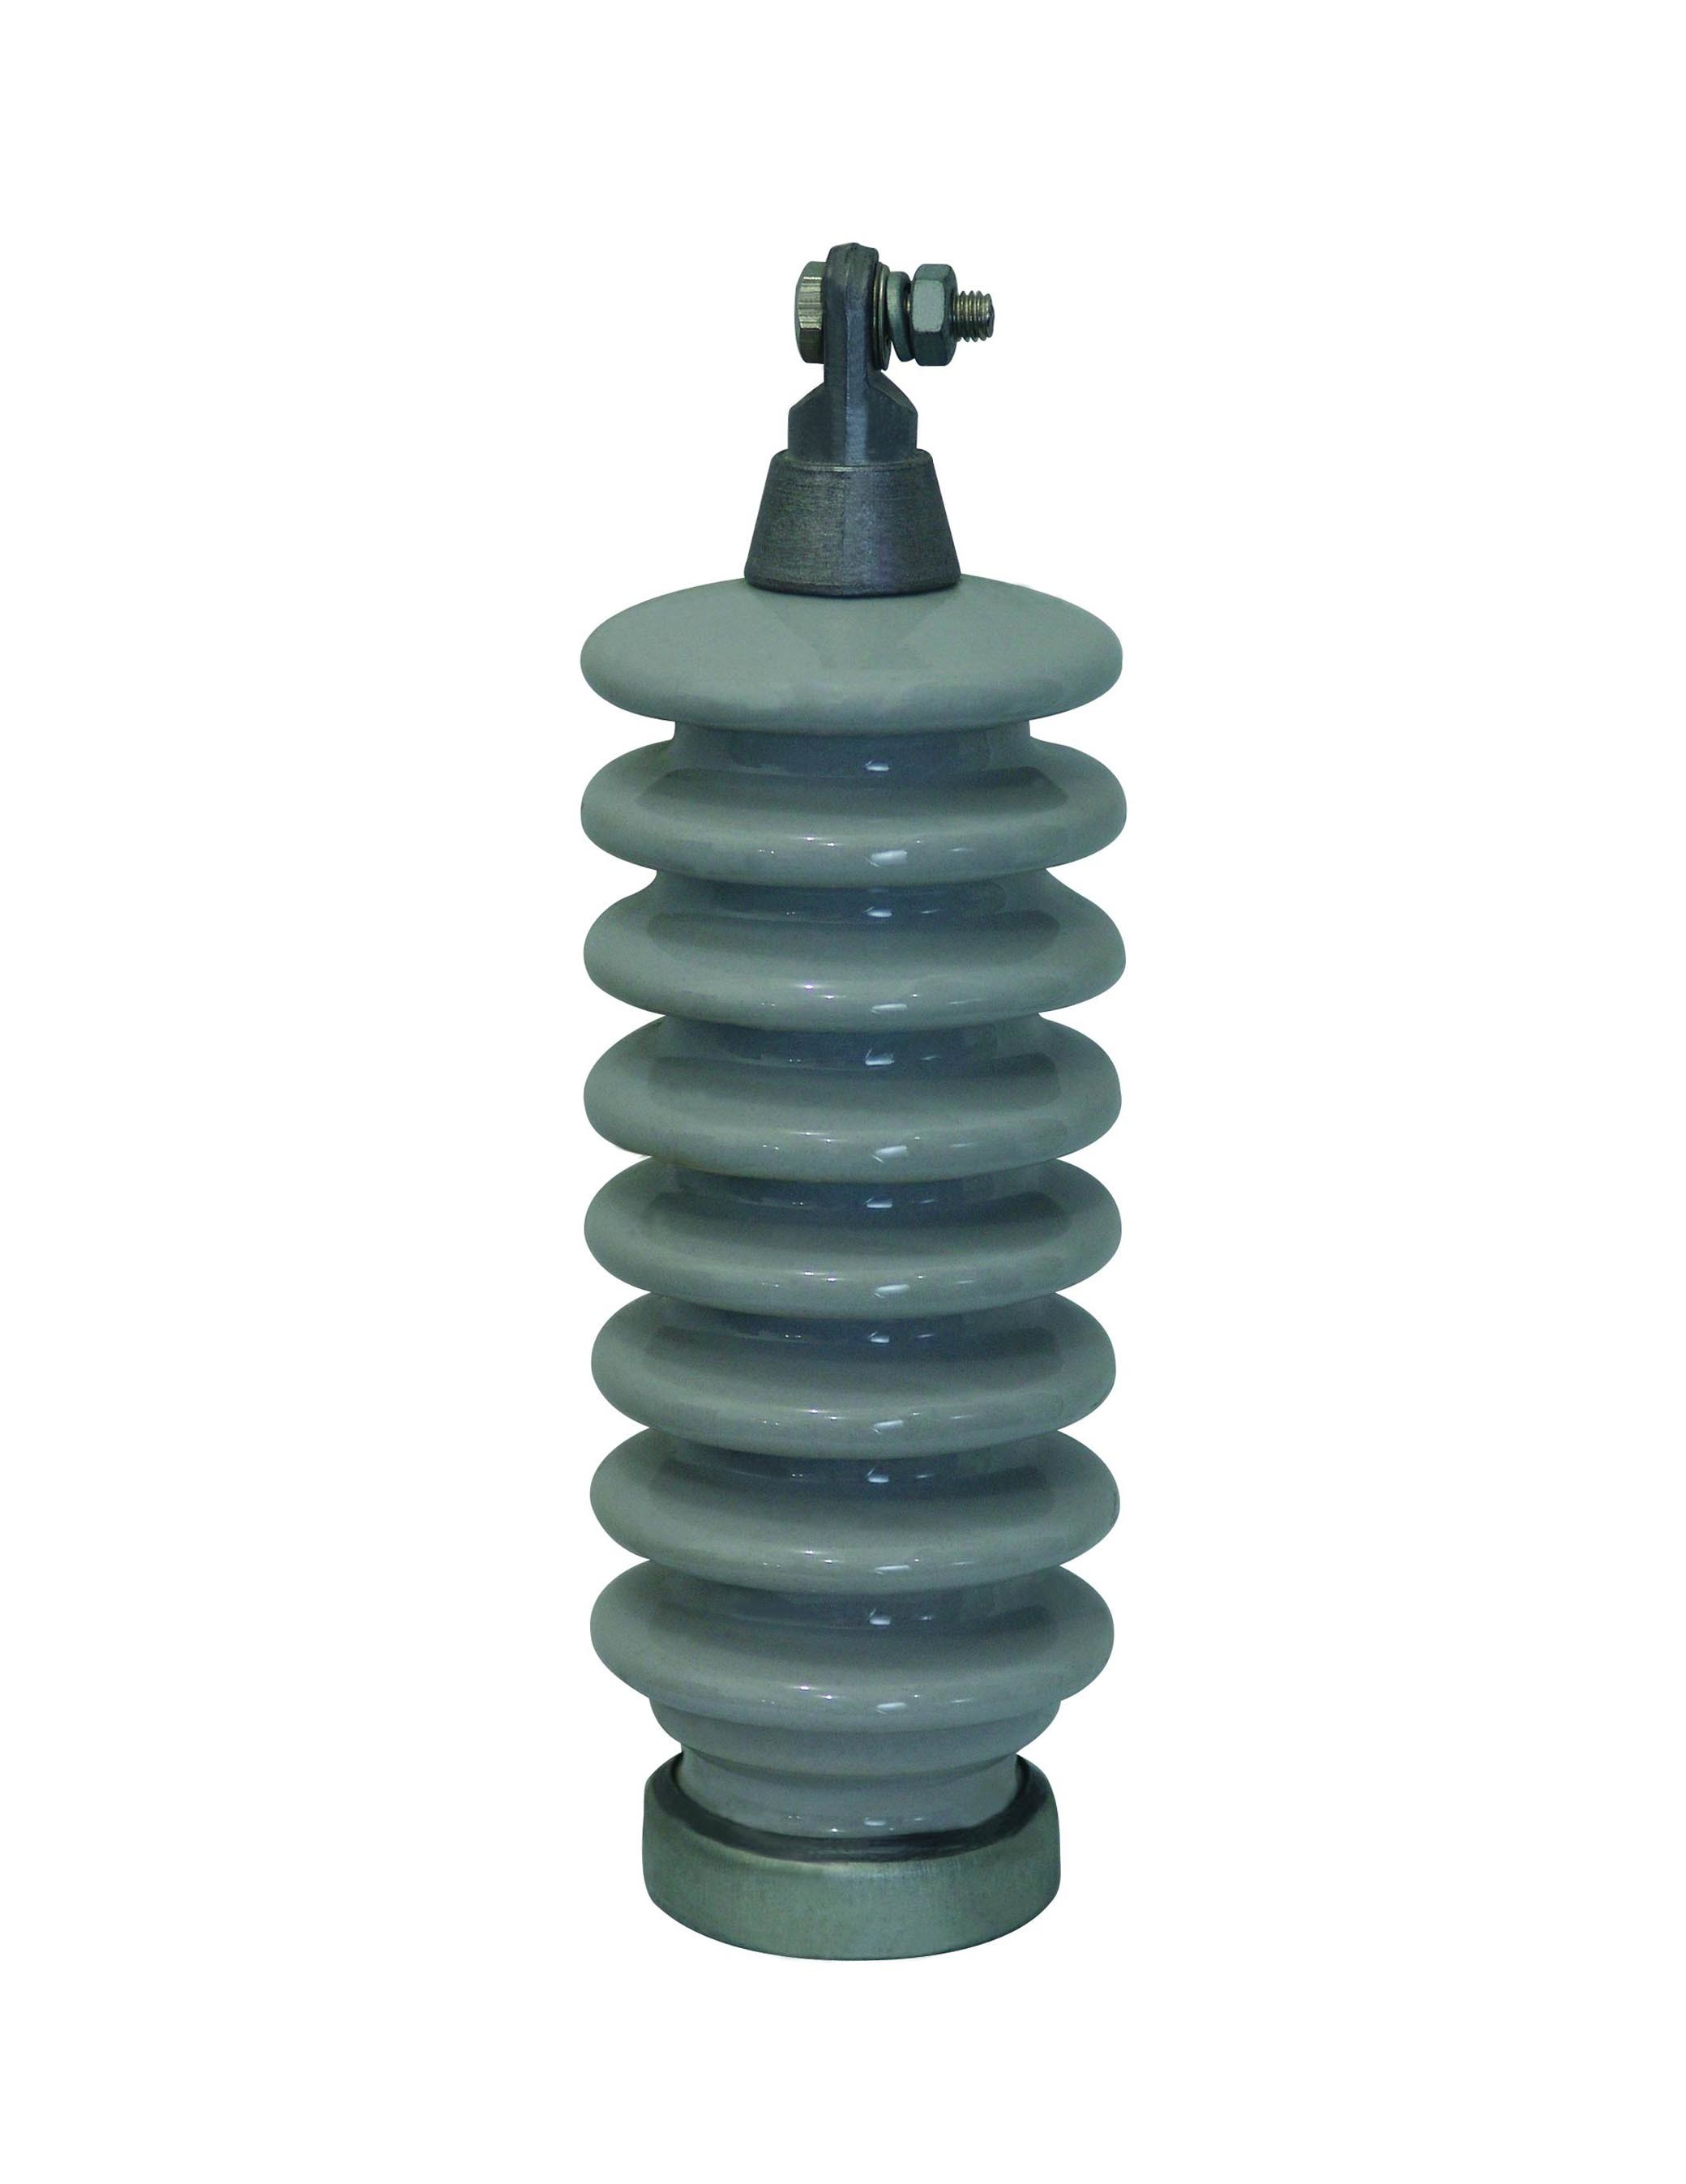 Porcelain Substation Surge Arrester (9-120kV)